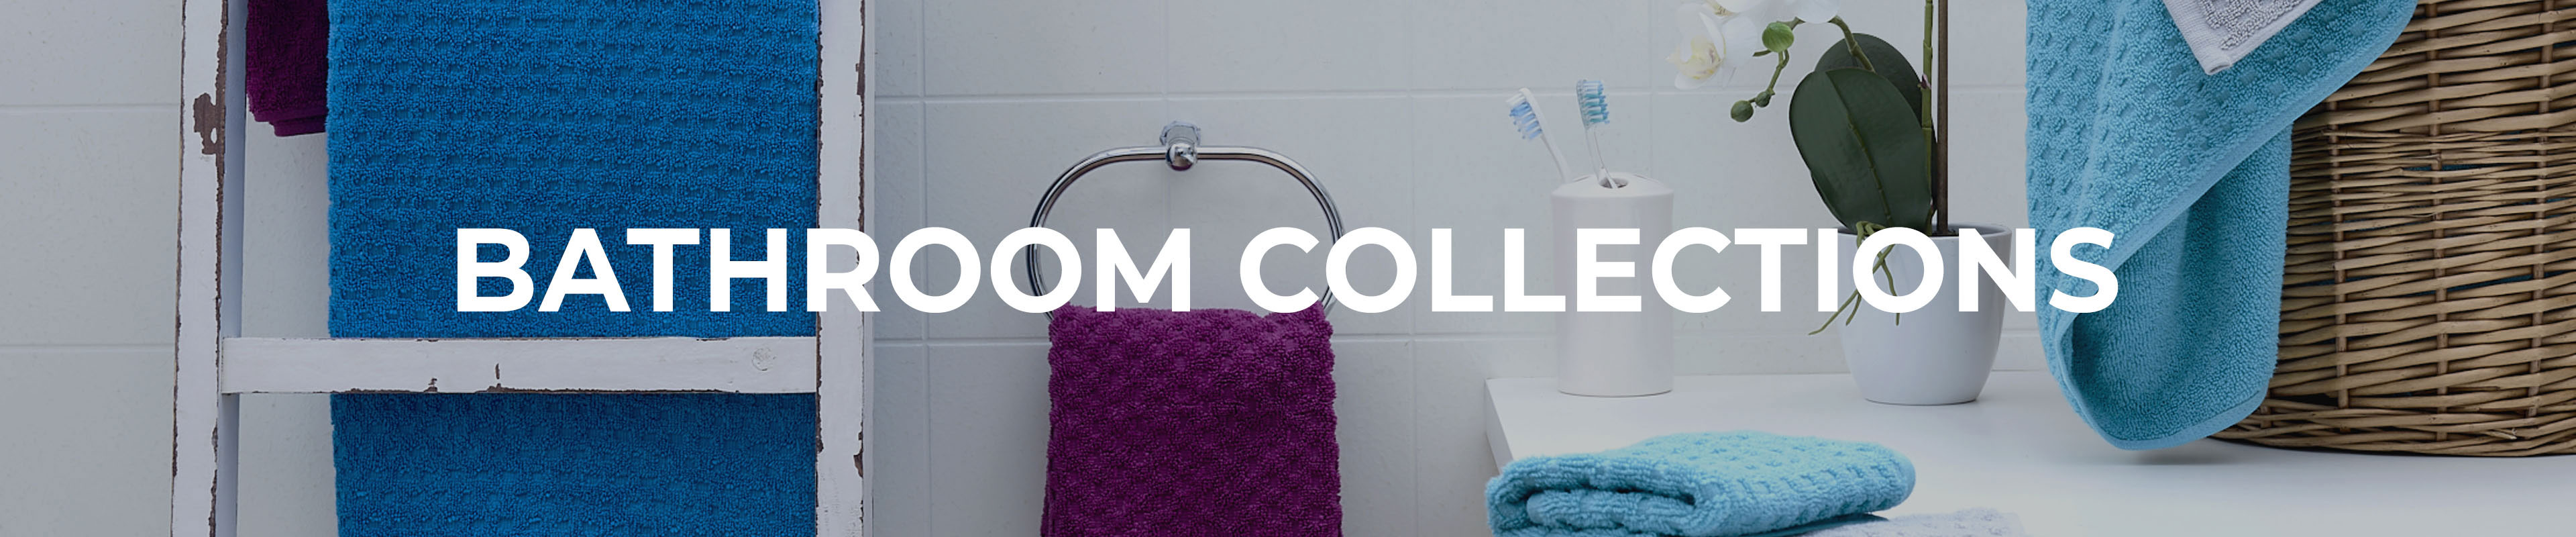 Shop Our Bathroom Collections